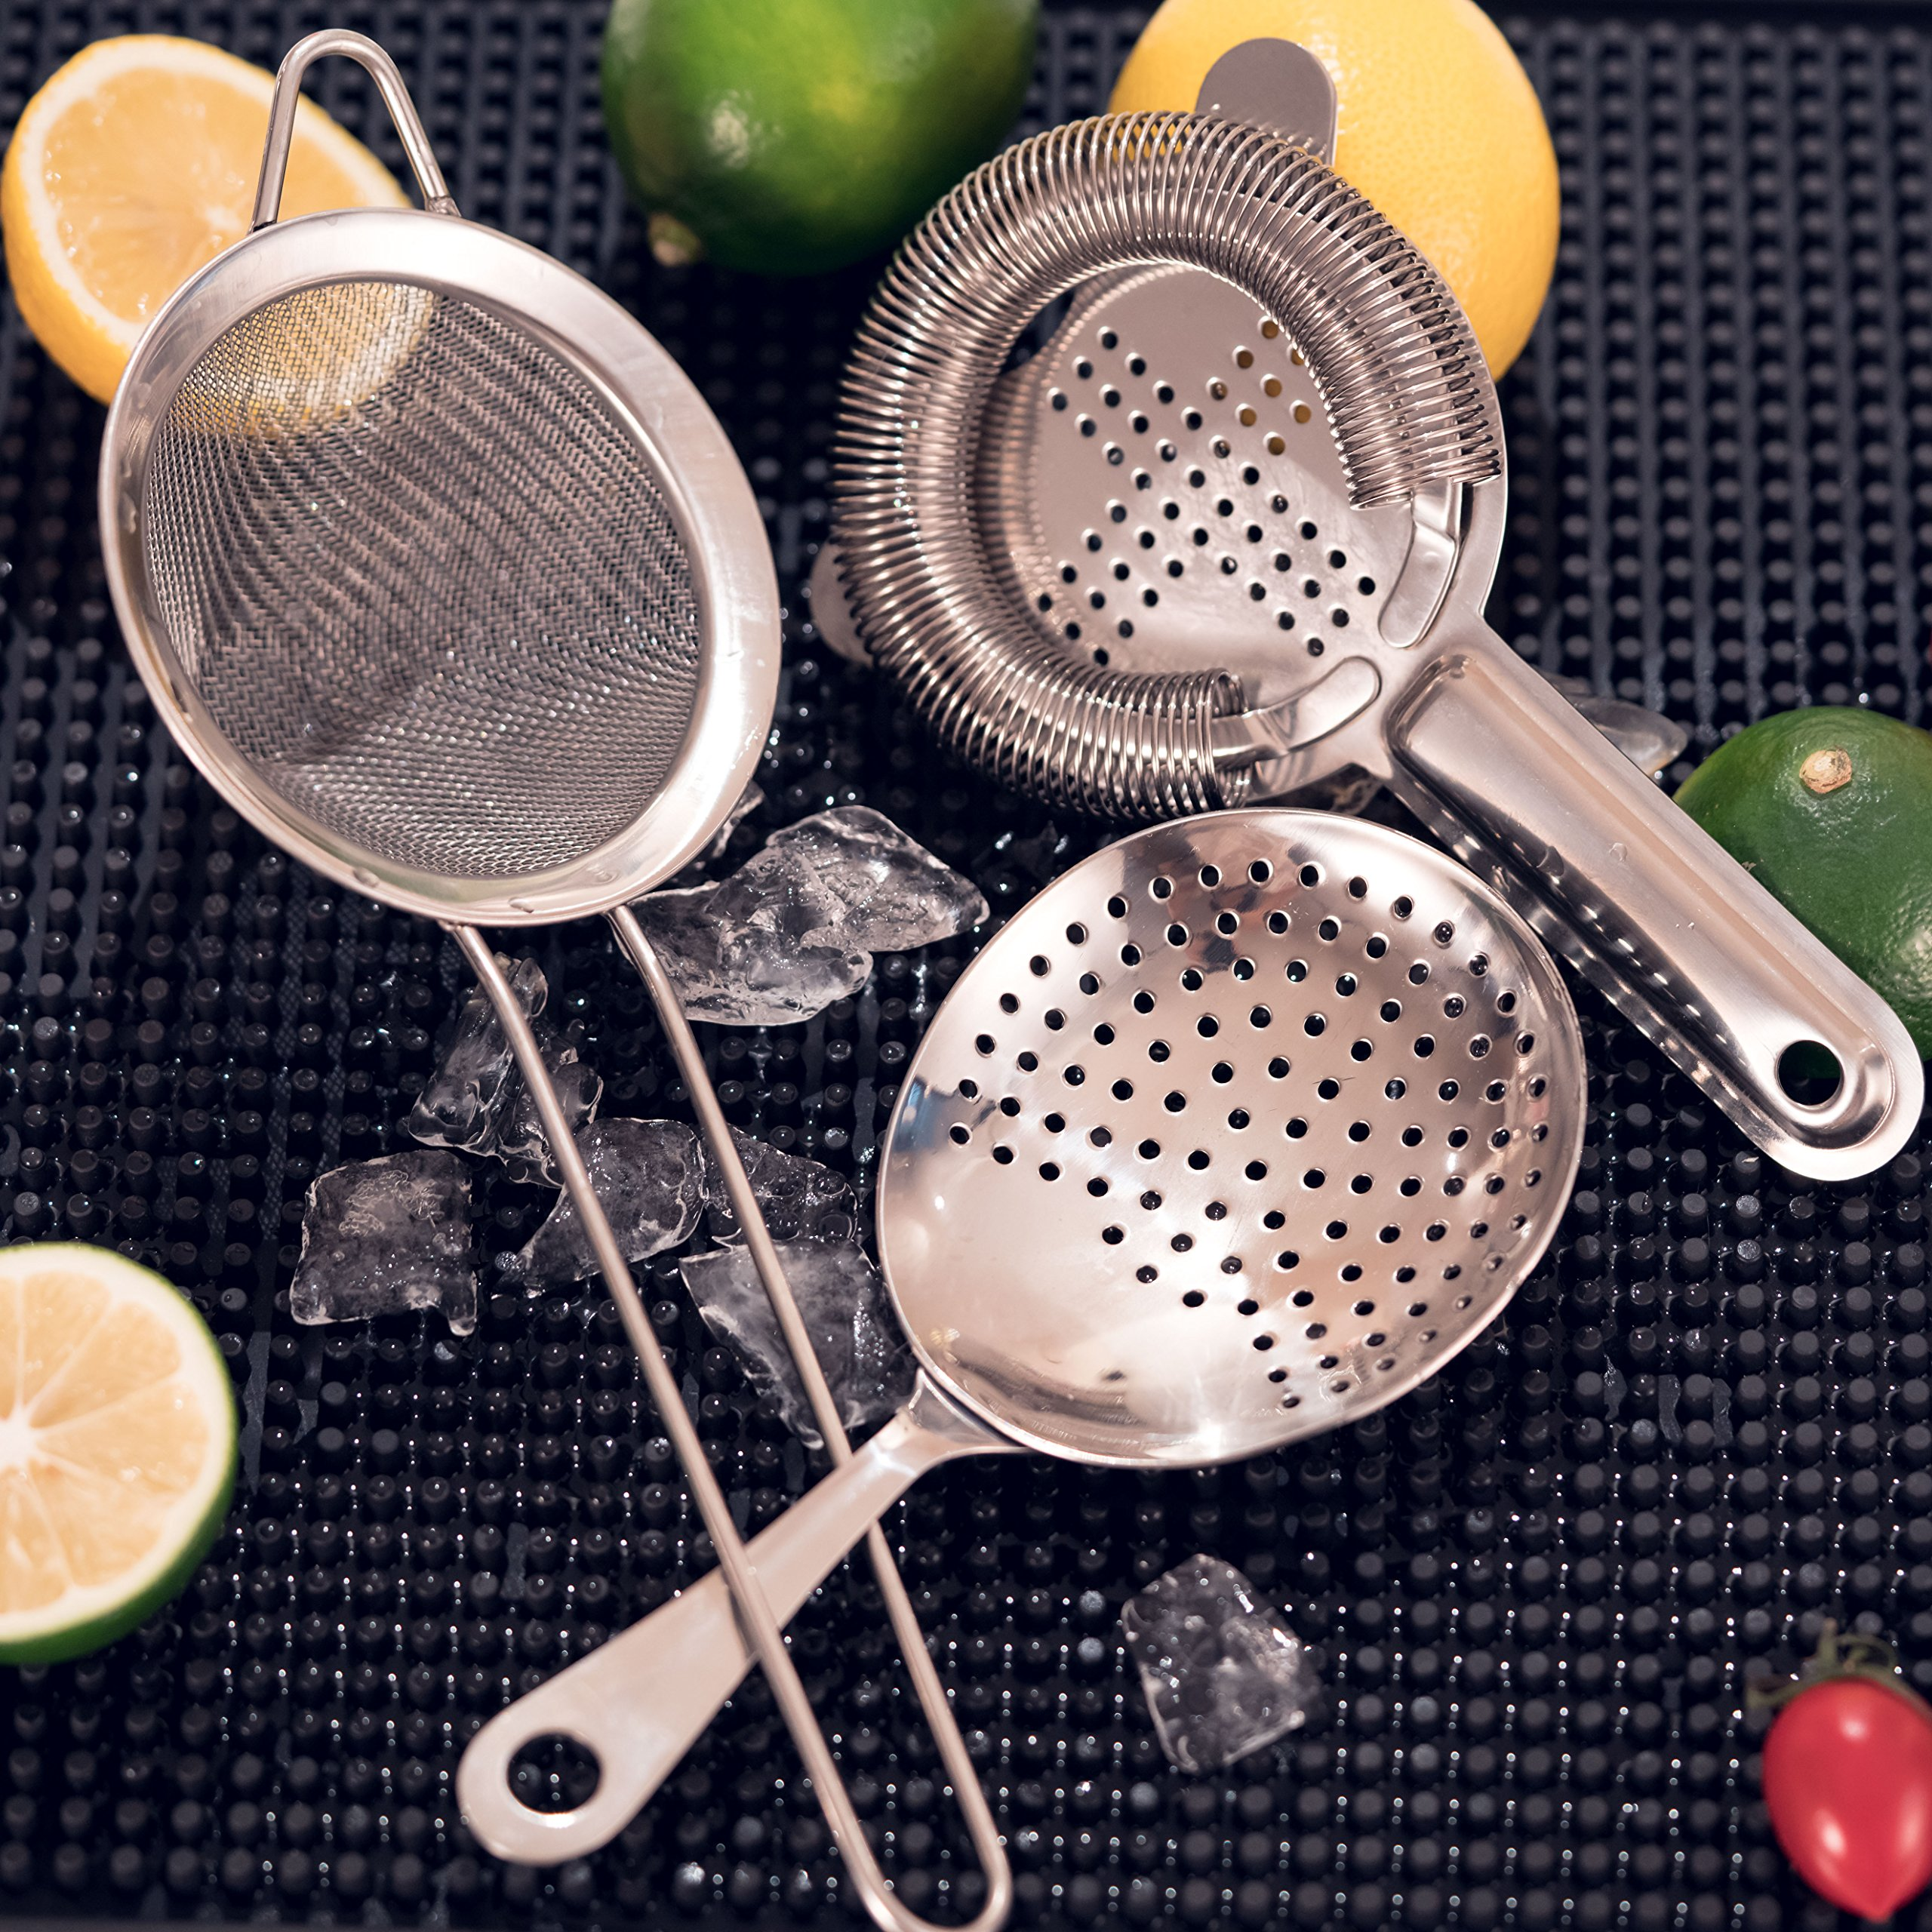 Cocktail Strainer Set for Professional Bartenders and Mixologists – Stainless Steel Hawthorne Strainer, Julep Strainer and Fine Mesh Conical Strainer by ALOONO (Image #7)